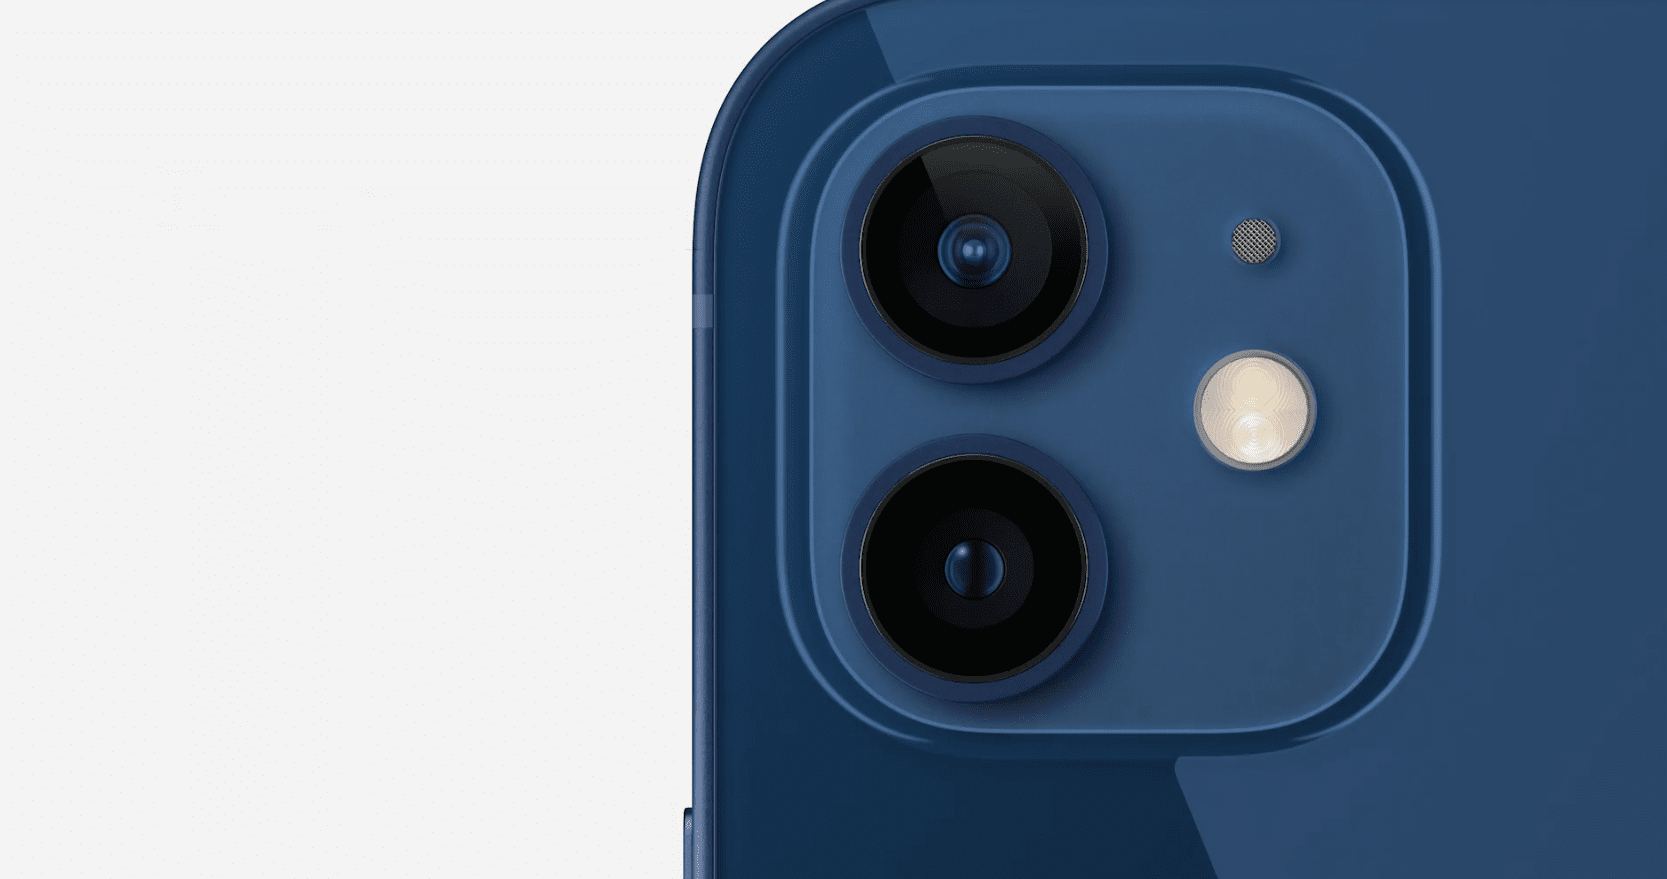 iPhone 12 camera set-up